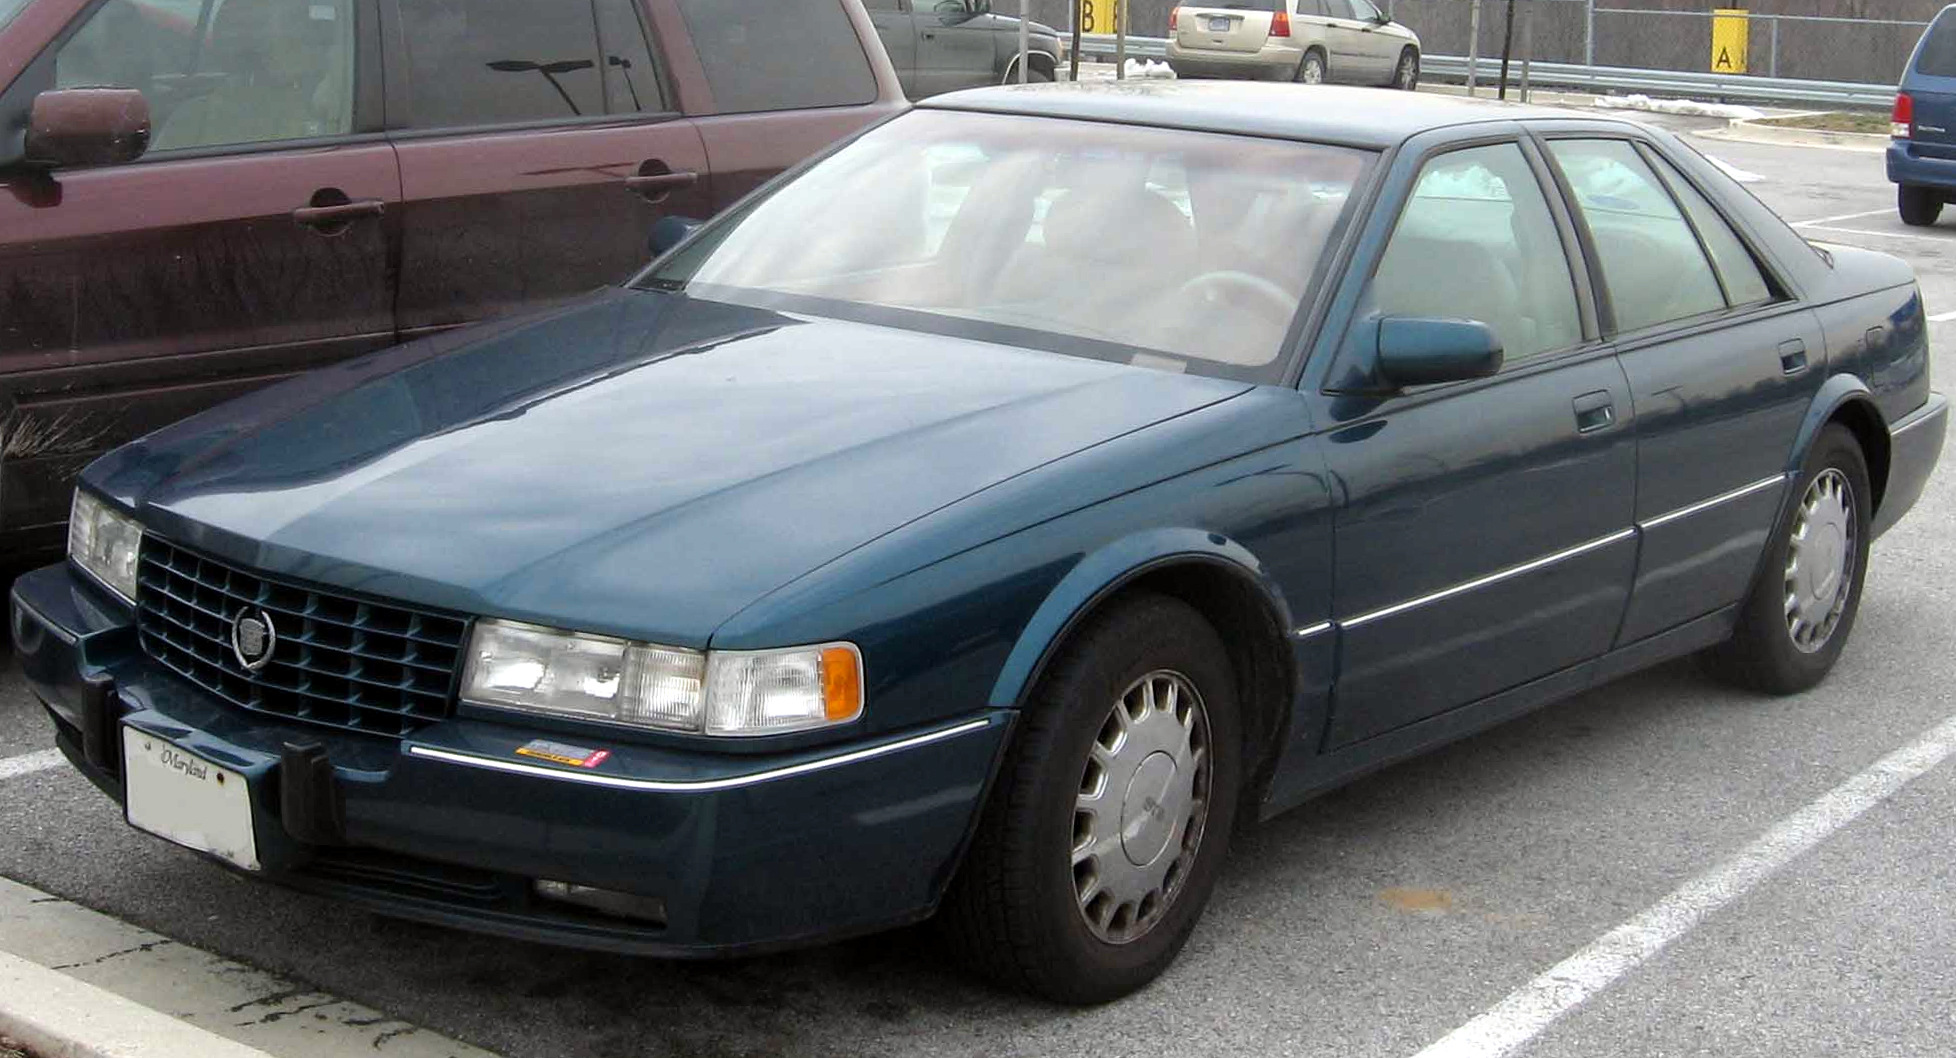 hight resolution of 1992 cadillac seville information and photos zombiedrive 1992 cadillac seville with rims 1992 cadillac seville fuel